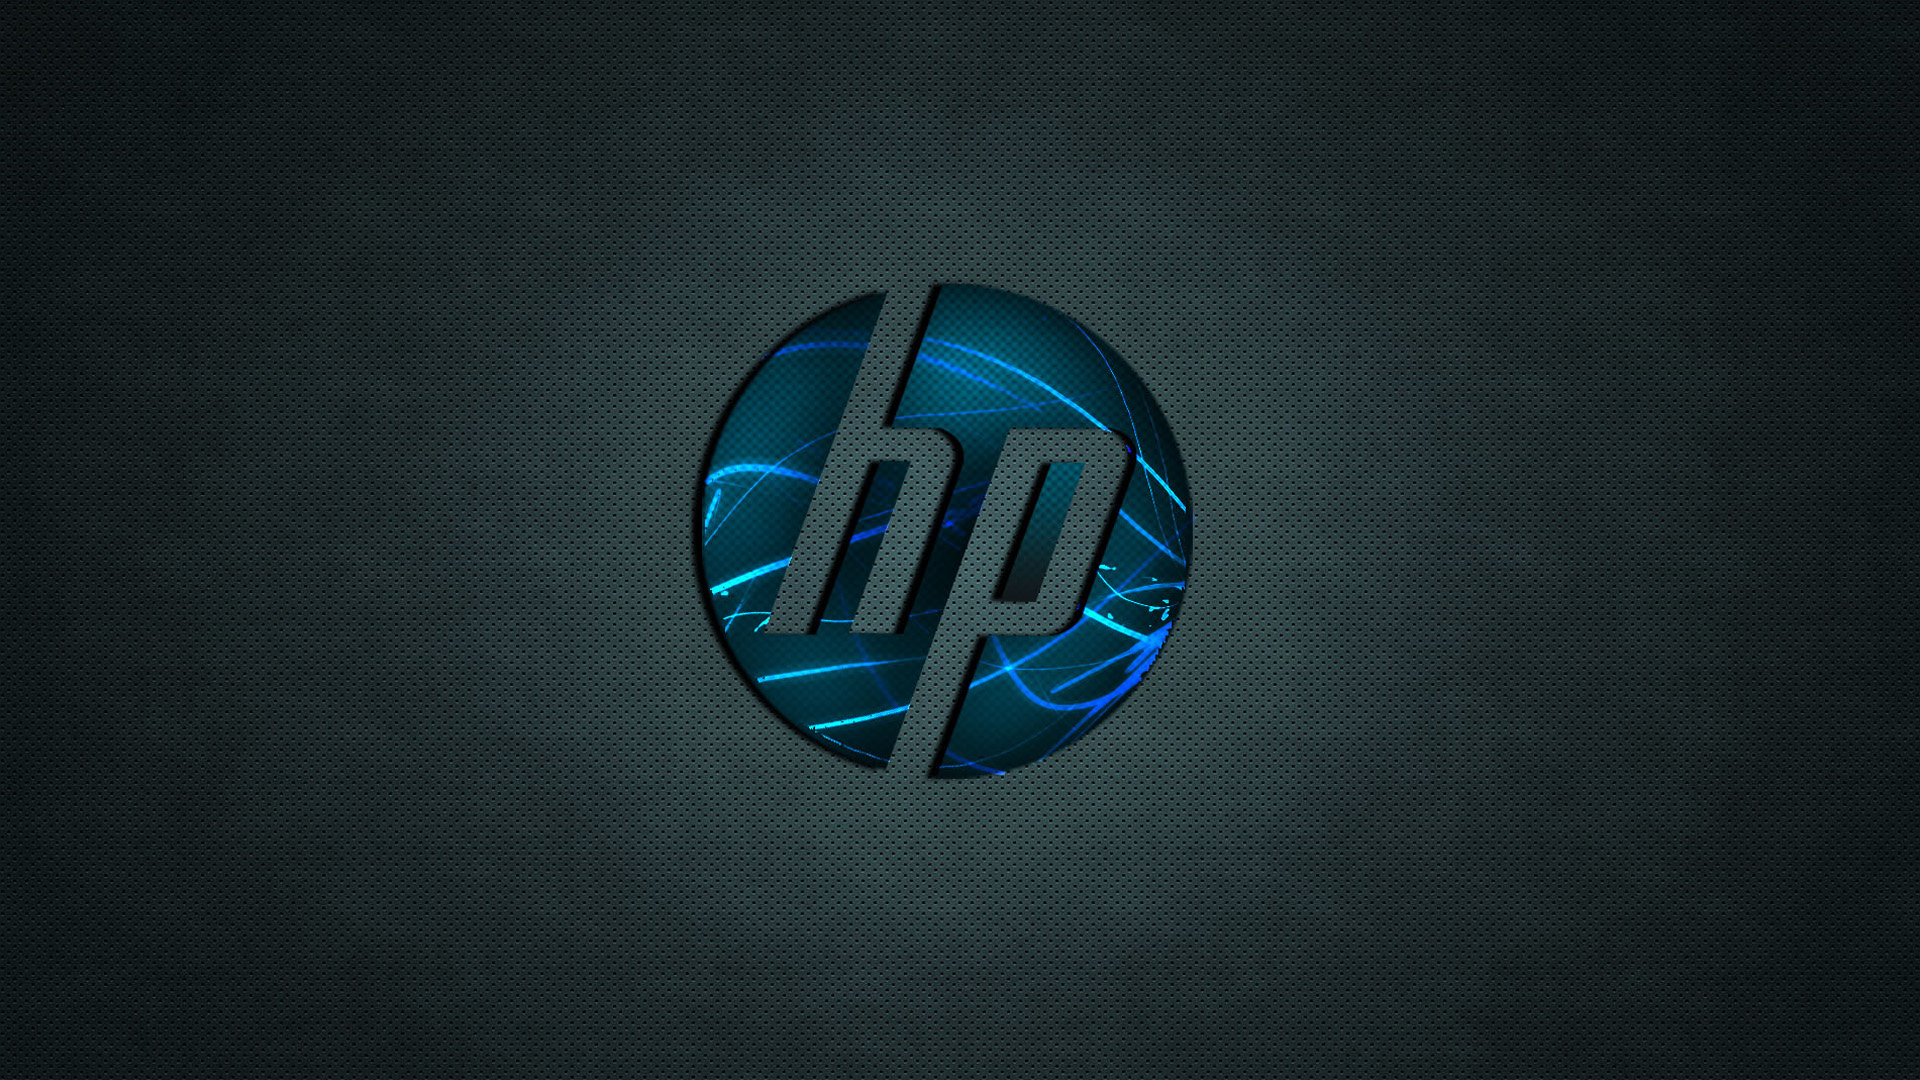 hp wallpapers 1920a—1080 52 wallpapers